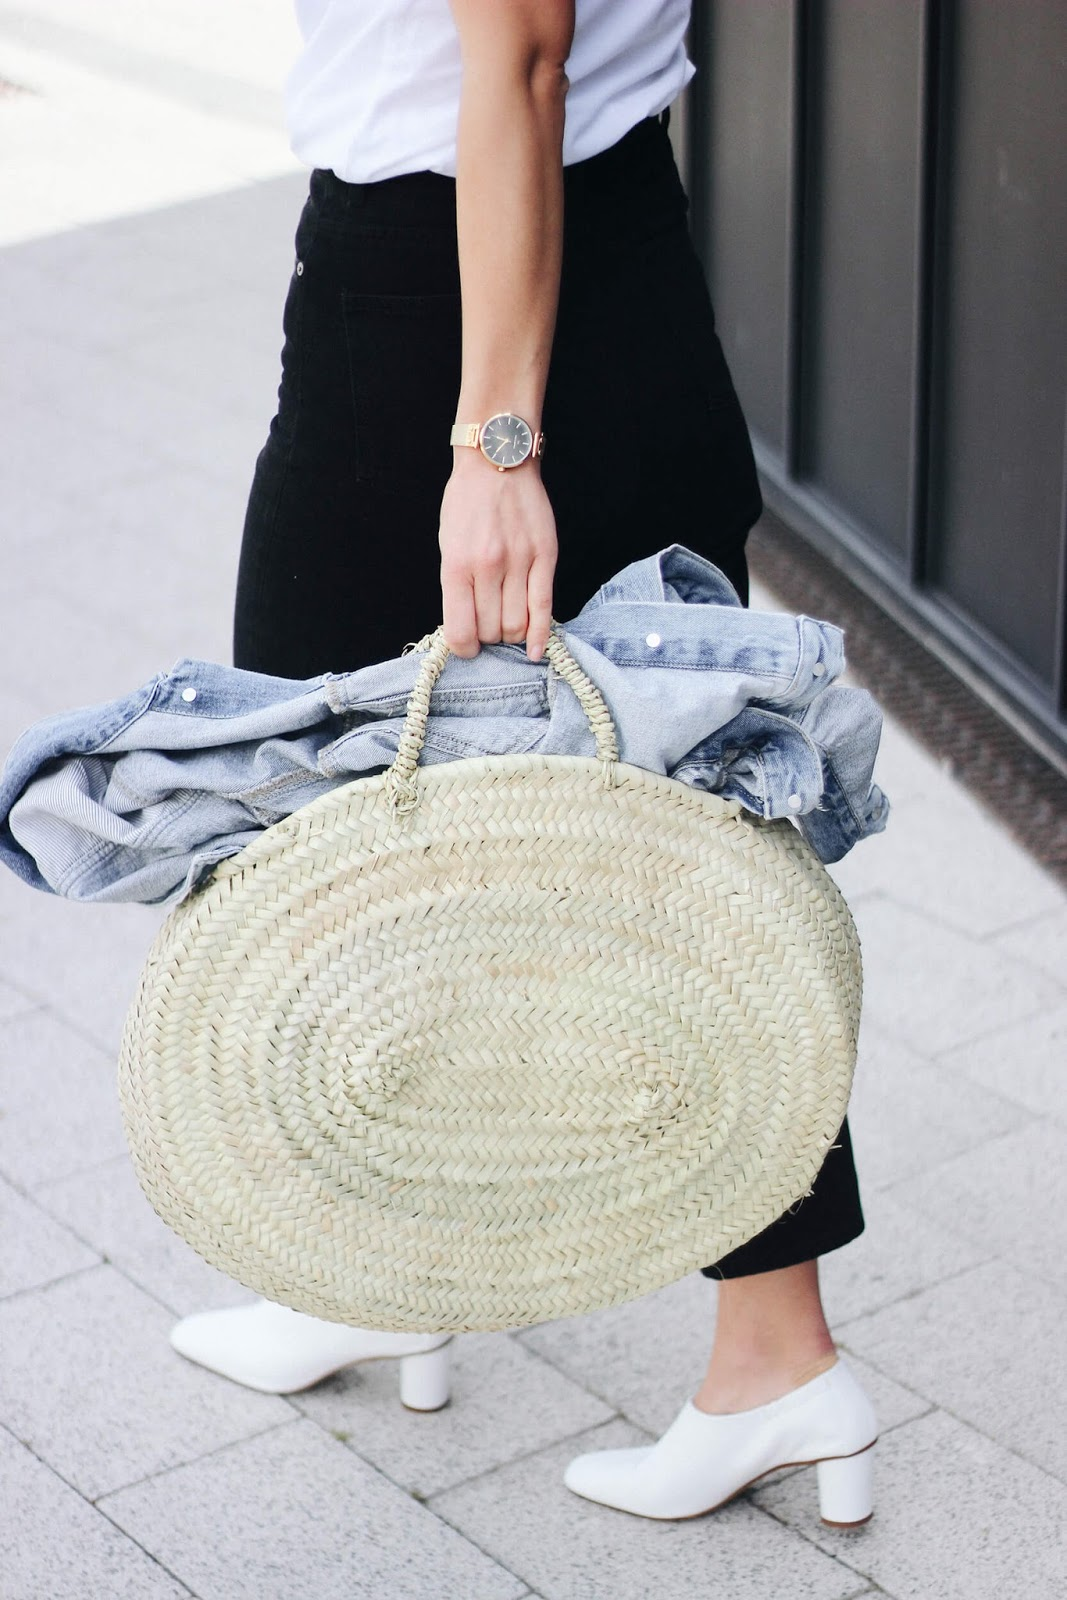 WOVEN BAG JEANS AND WHITE SHOES LOOK